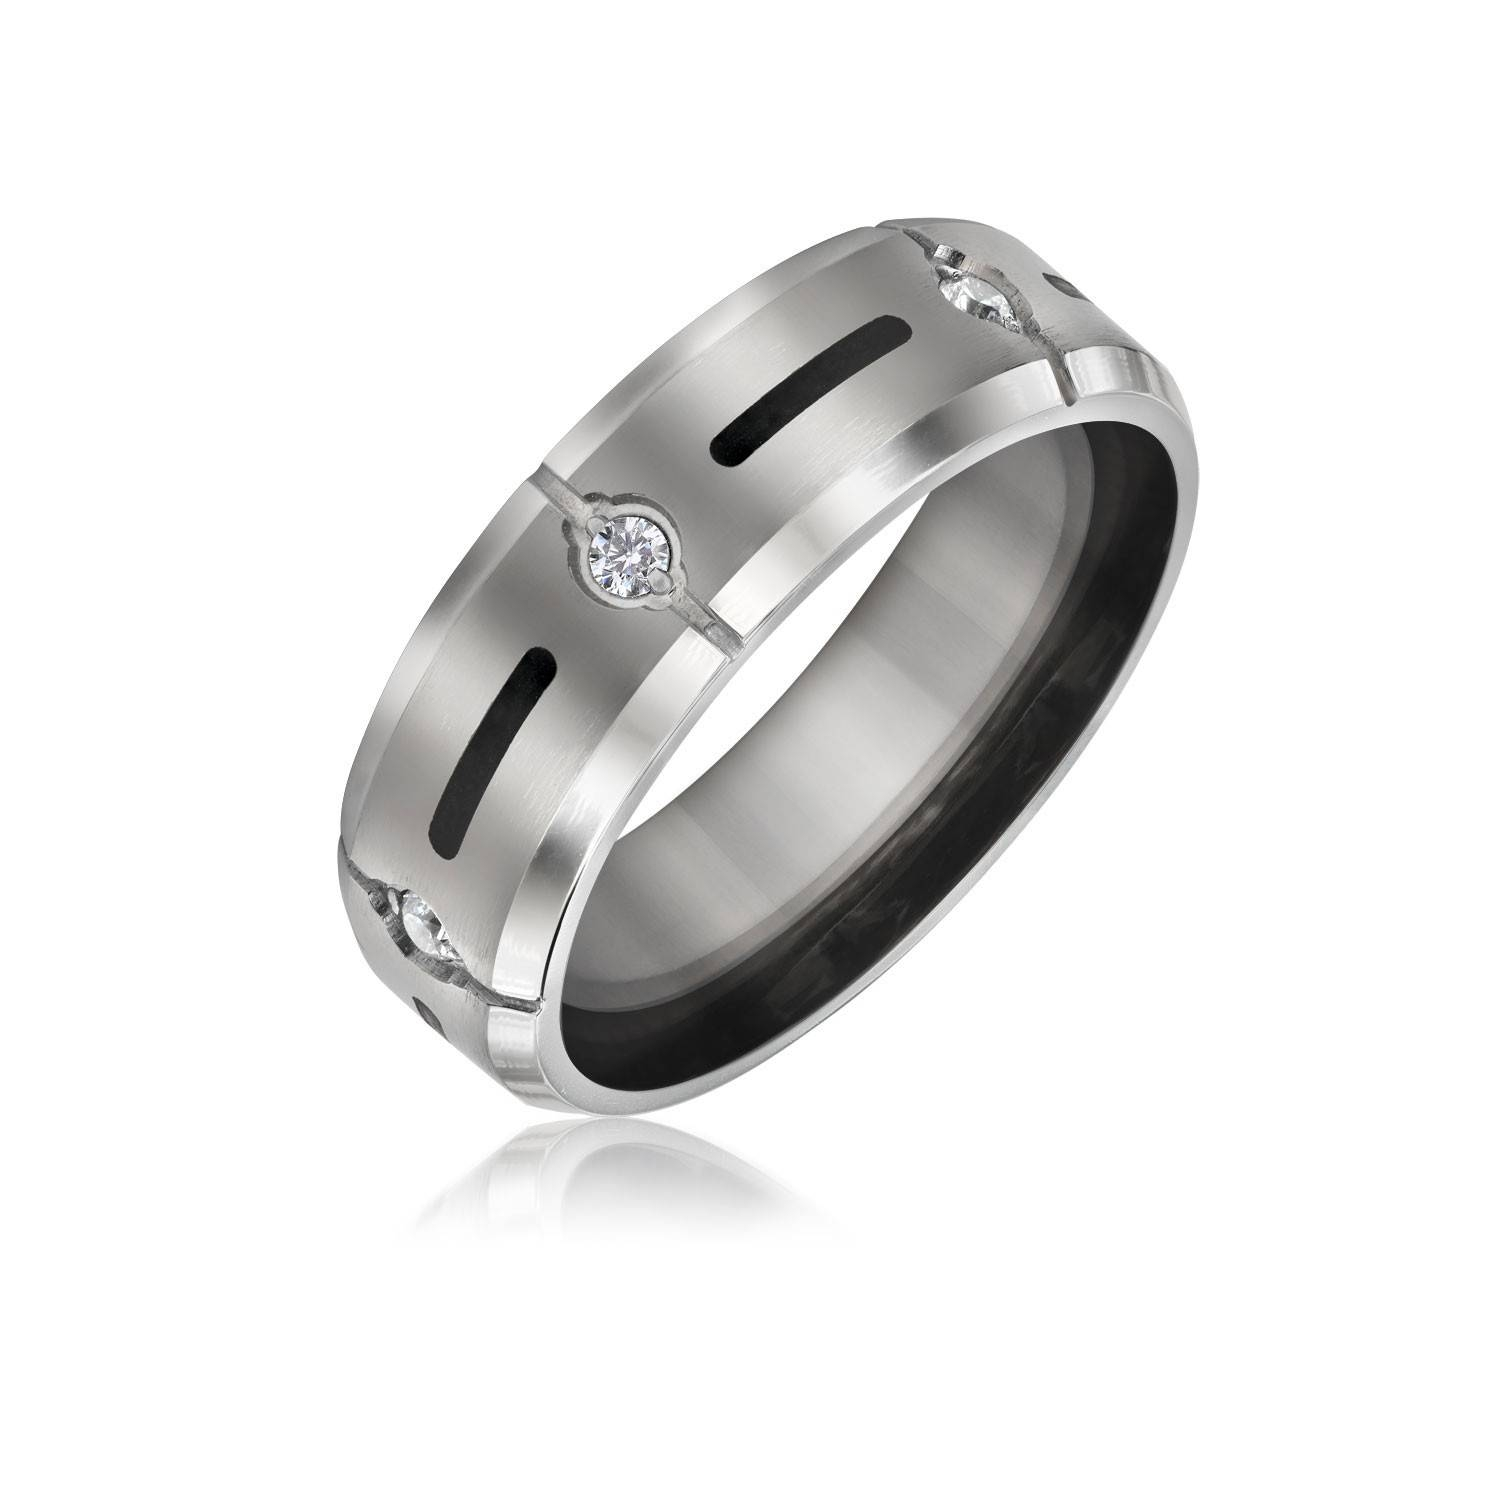 Mens Titanium Ring Cz Wedding Band Ring With Resin Inlay 7Mm With Regard To Titanium Men Wedding Bands (View 5 of 15)